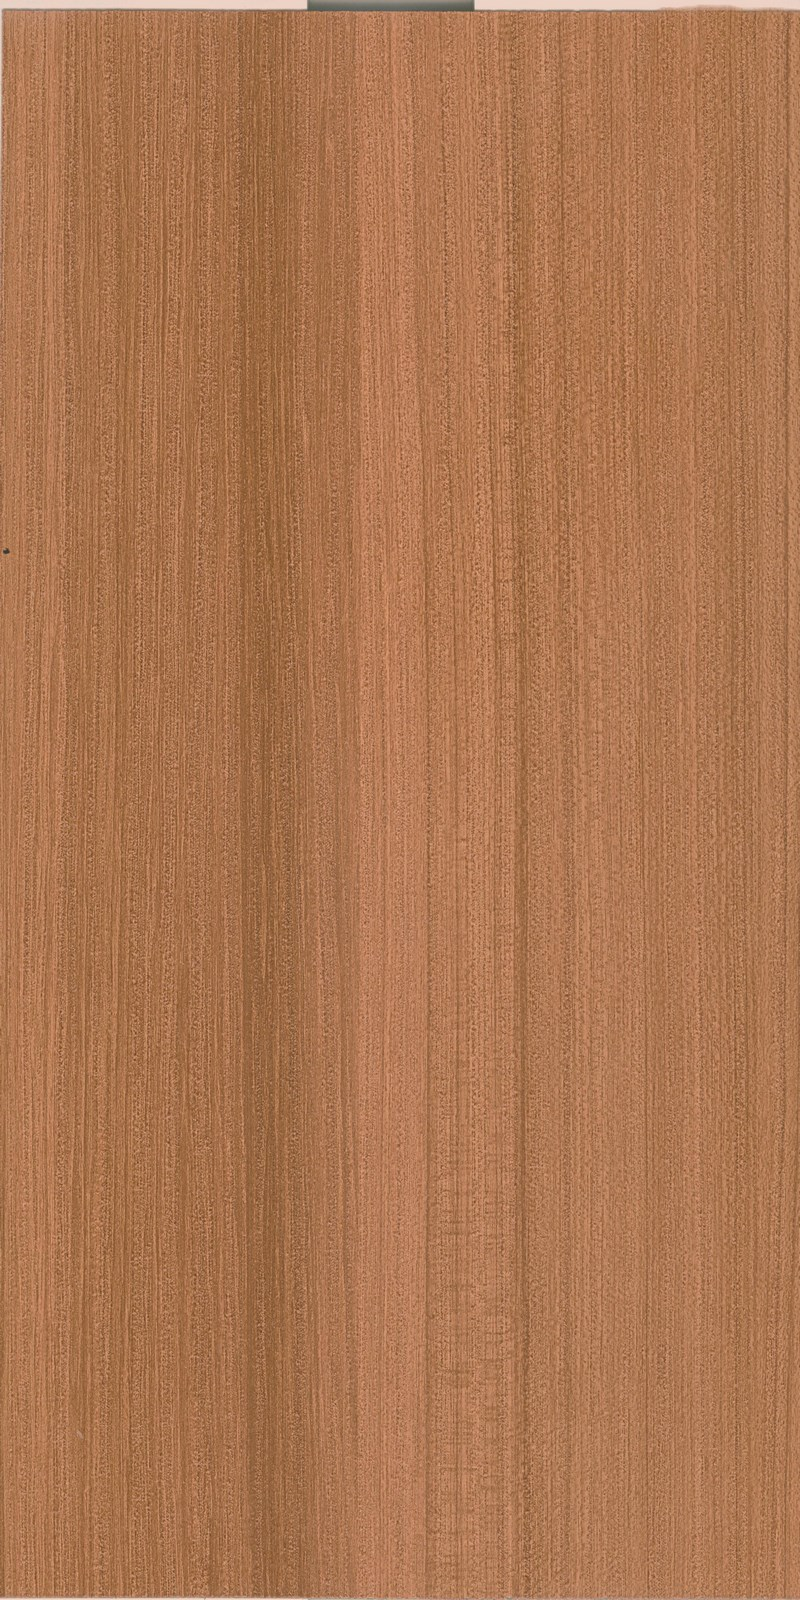 Get Best Quotes for Greenlam Parallel Streak Finish 8X4 Laminates in India